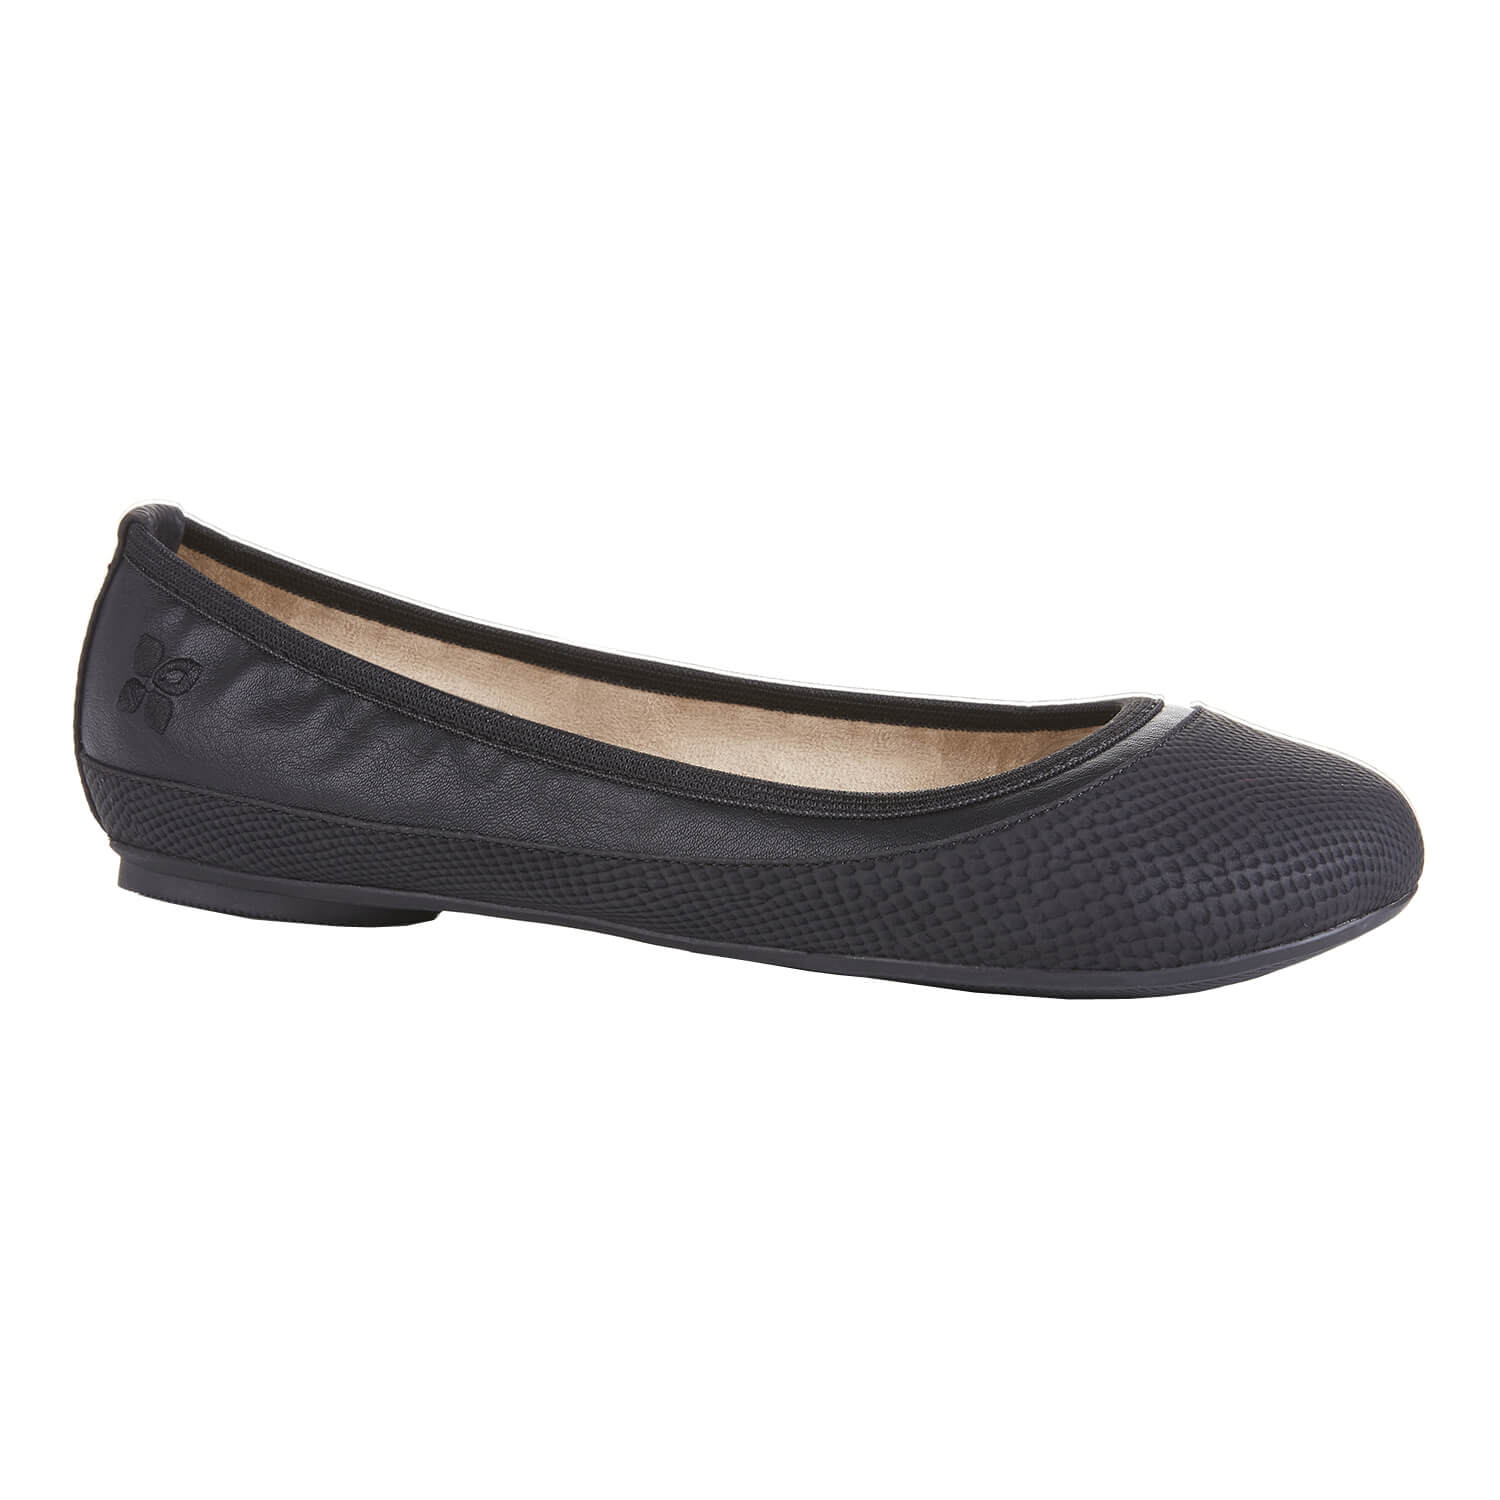 696d980e3f1d55 Butterfly Twists Faltbare Ballerinen Hannah Black Snake BT21-022-201 ...